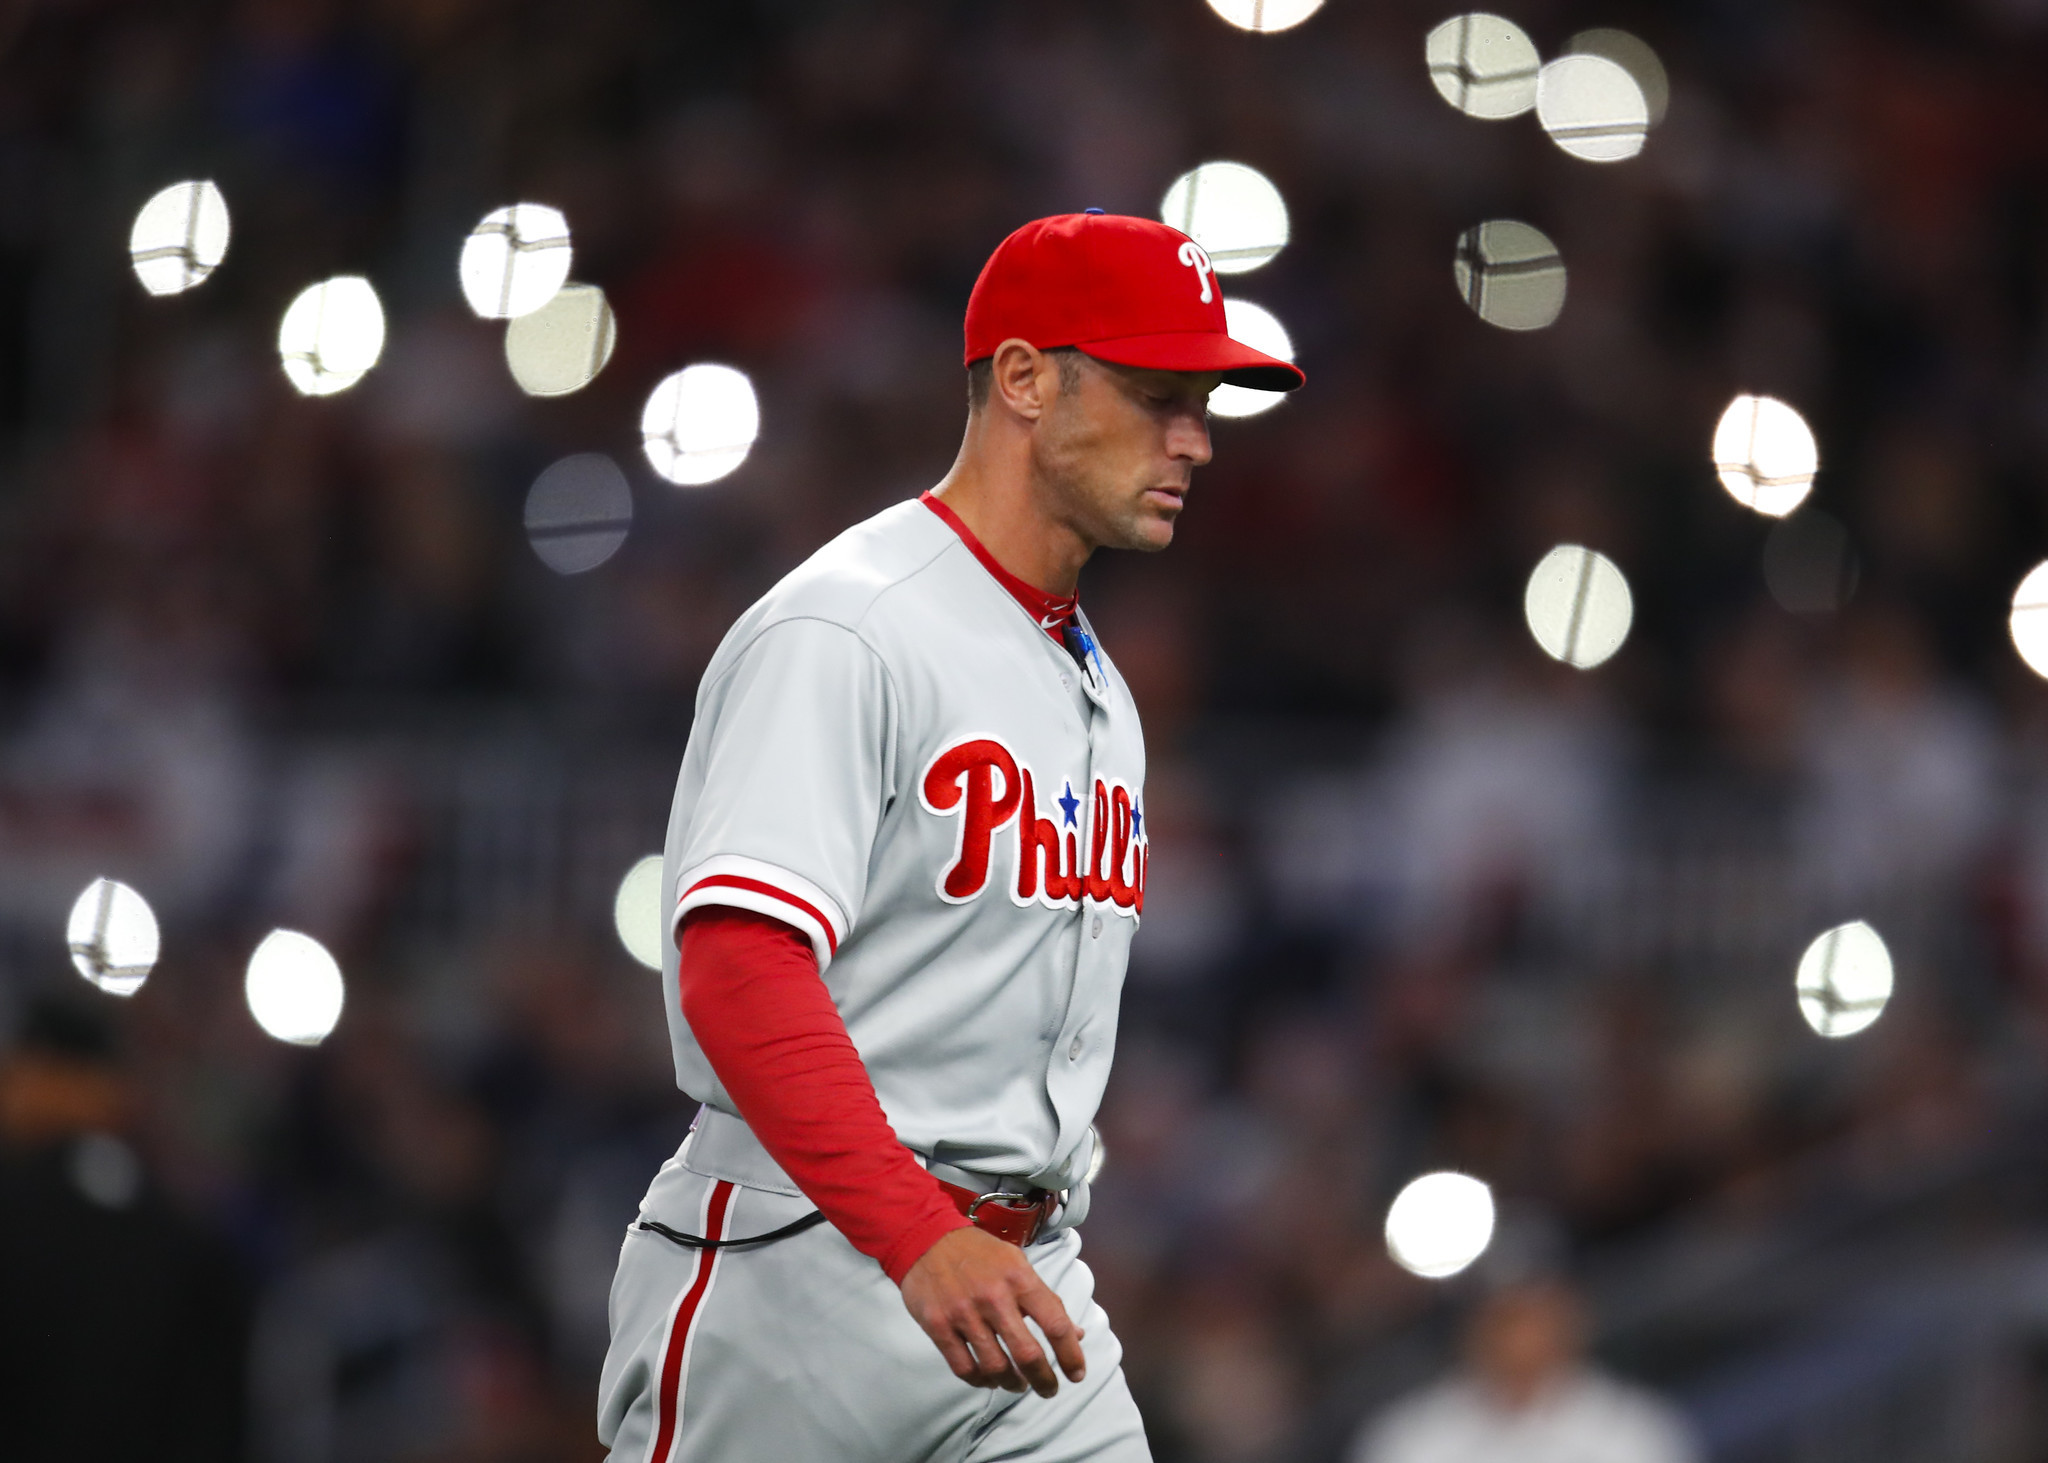 After Tax Calculator >> Gabe Kapler's bullpen usage with Phillies is becoming a soap opera - The Morning Call